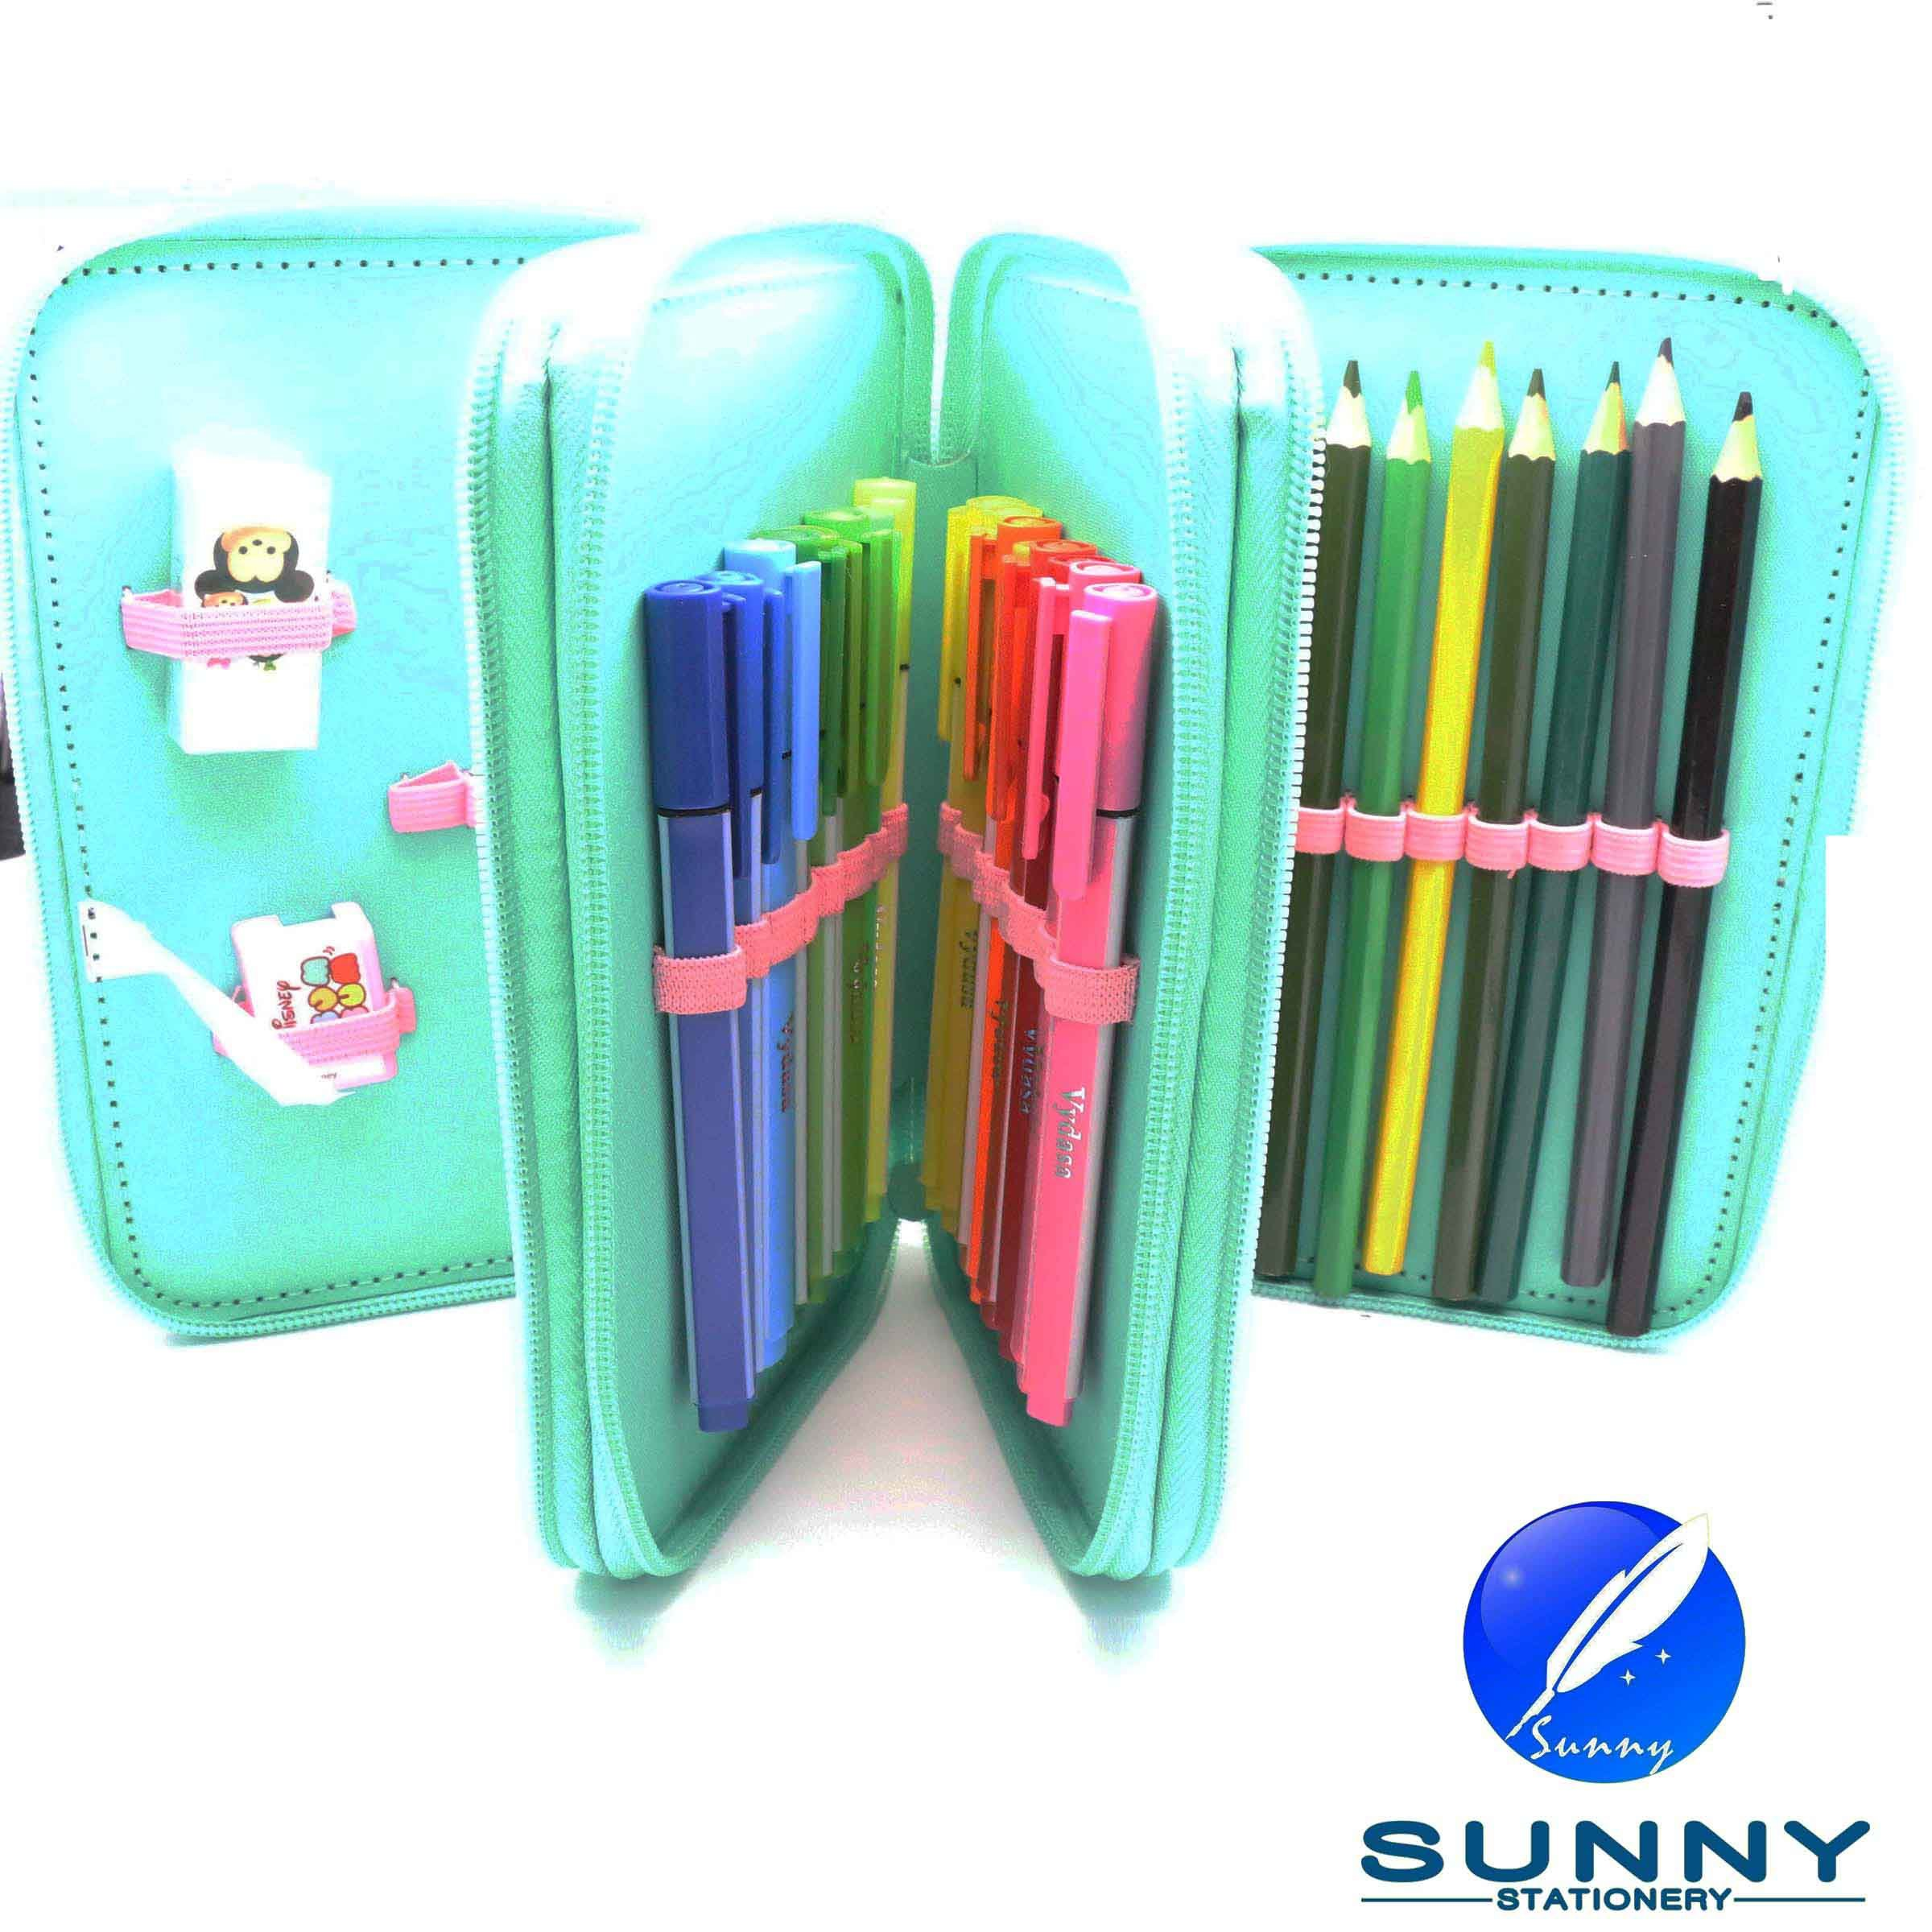 2015 Hot Sale Zip Pencil Case Stationery Set, Third Tier Pencil Case, School Bag Stationery Set